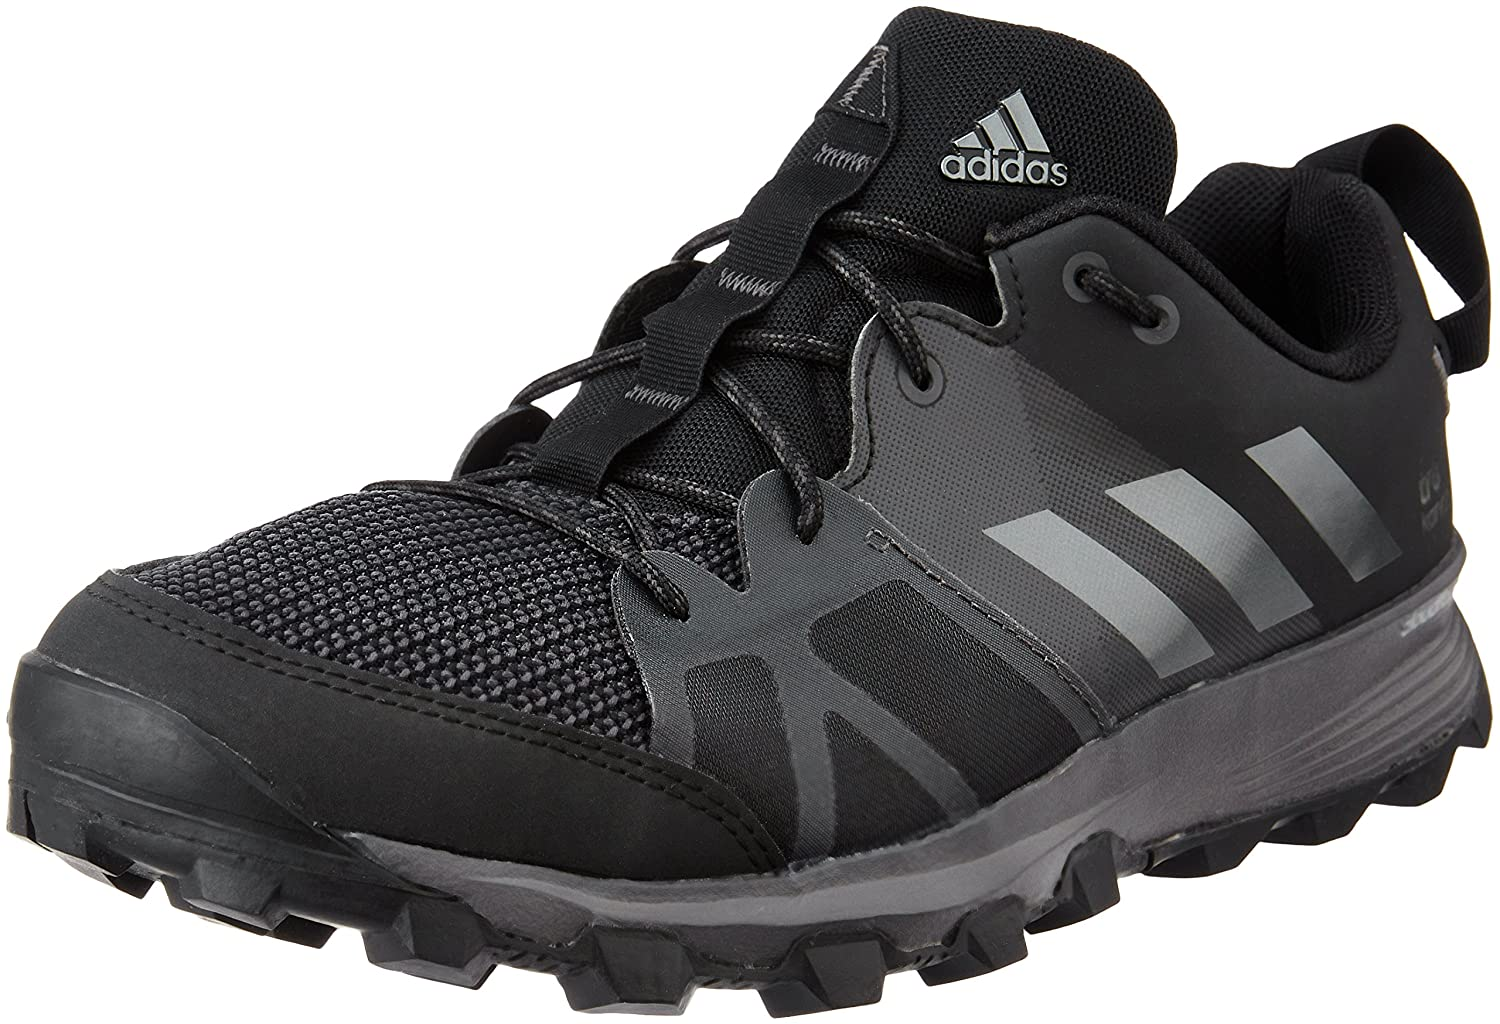 caf21fac460c80 adidas Men s Kanadia 8 Trail Running Shoes Black  Amazon.co.uk  Shoes   Bags